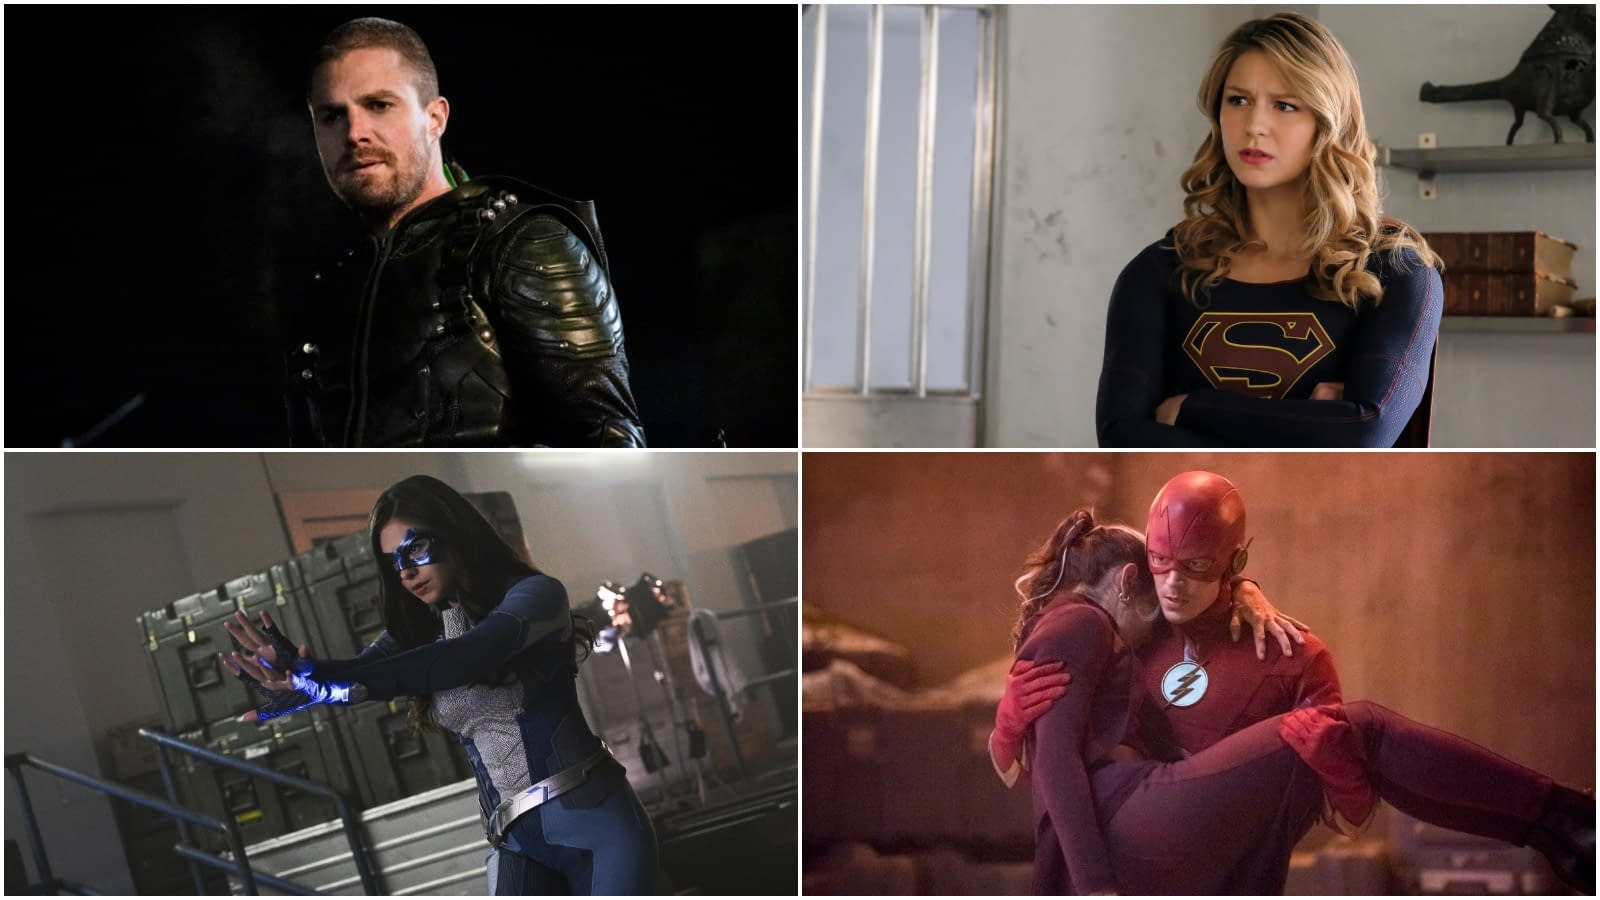 Ever Wonder How 'Arrow', 'The Flash' and 'Supergirl' Picked Their Leads? CW's David Rapport Explains All